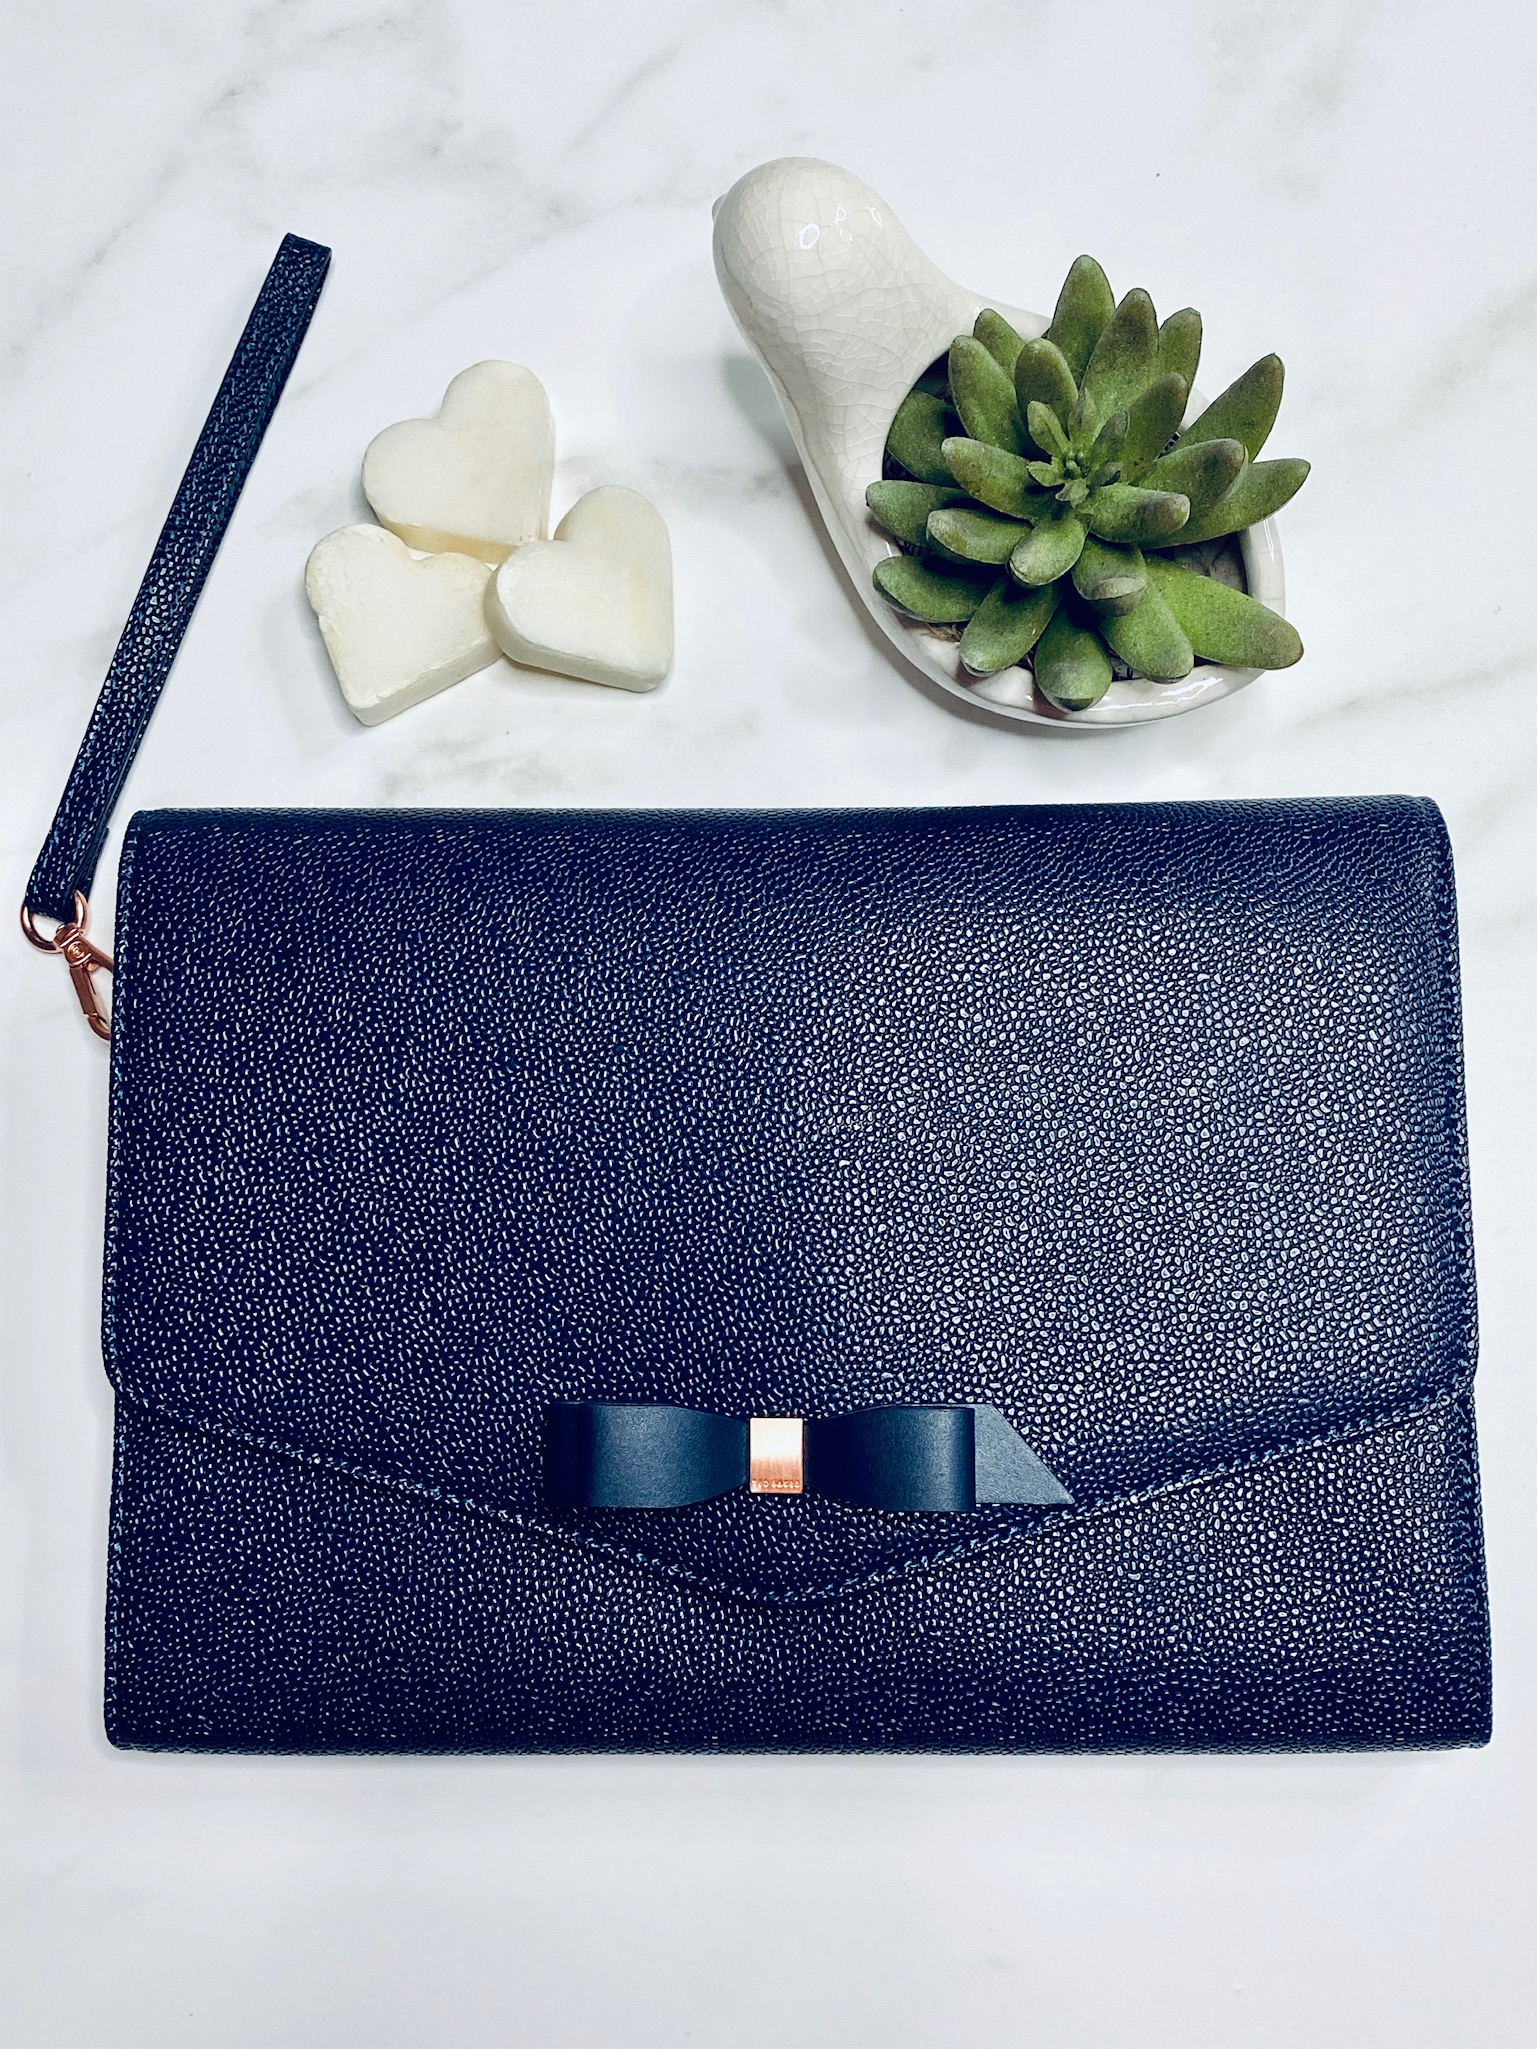 navy blue clutch on white background with plant and heart soaps